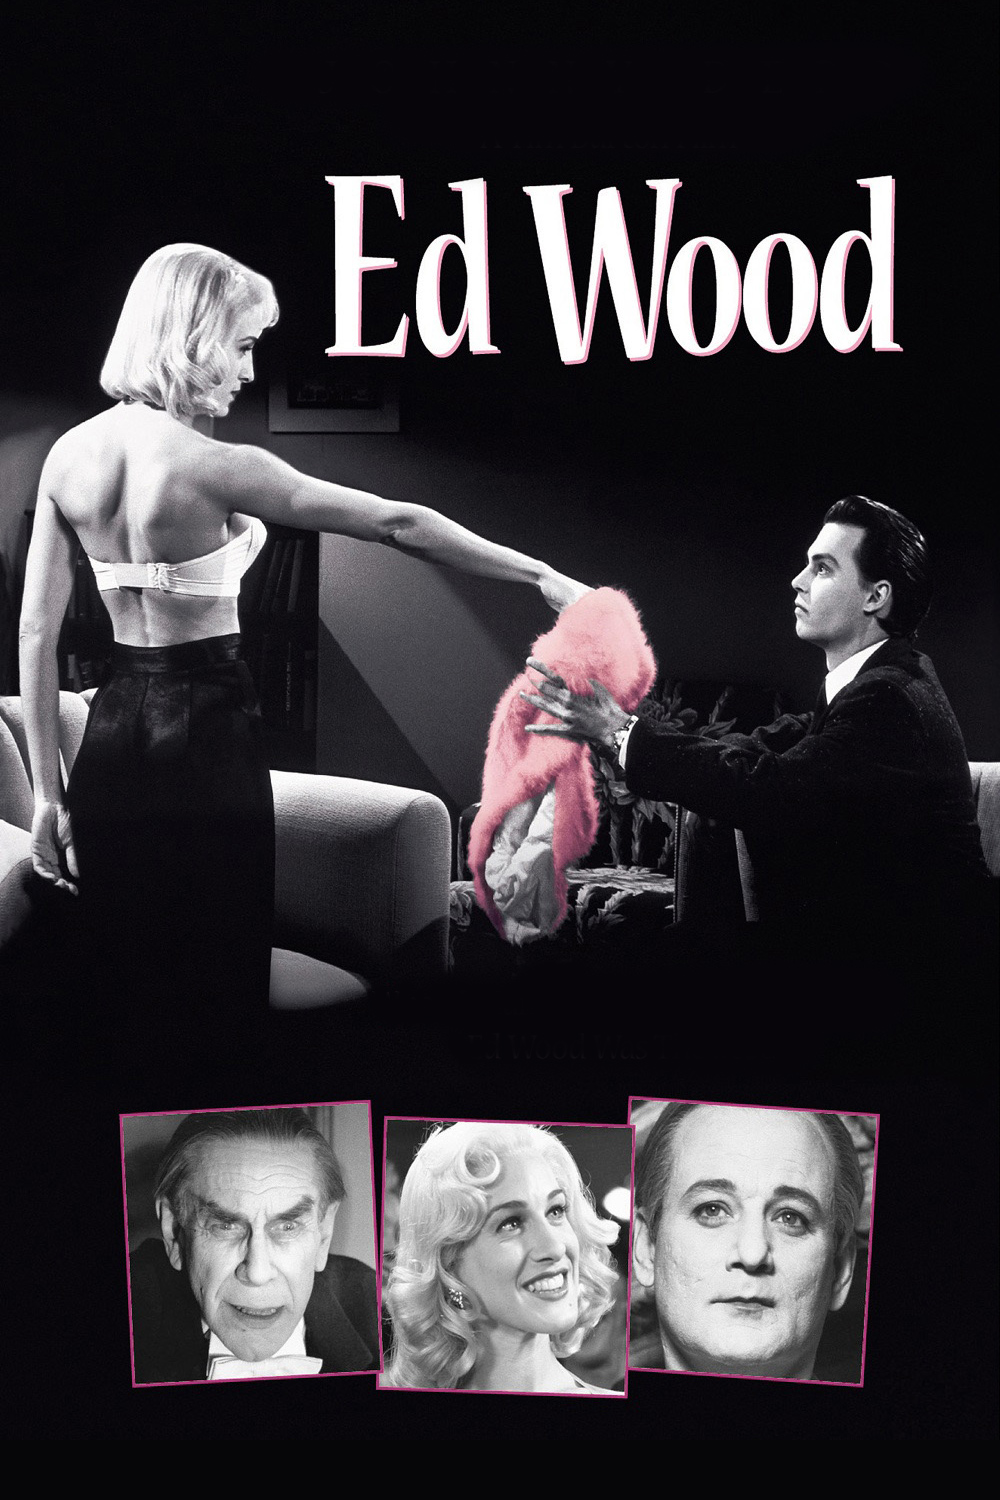 Ed Wood promotional image